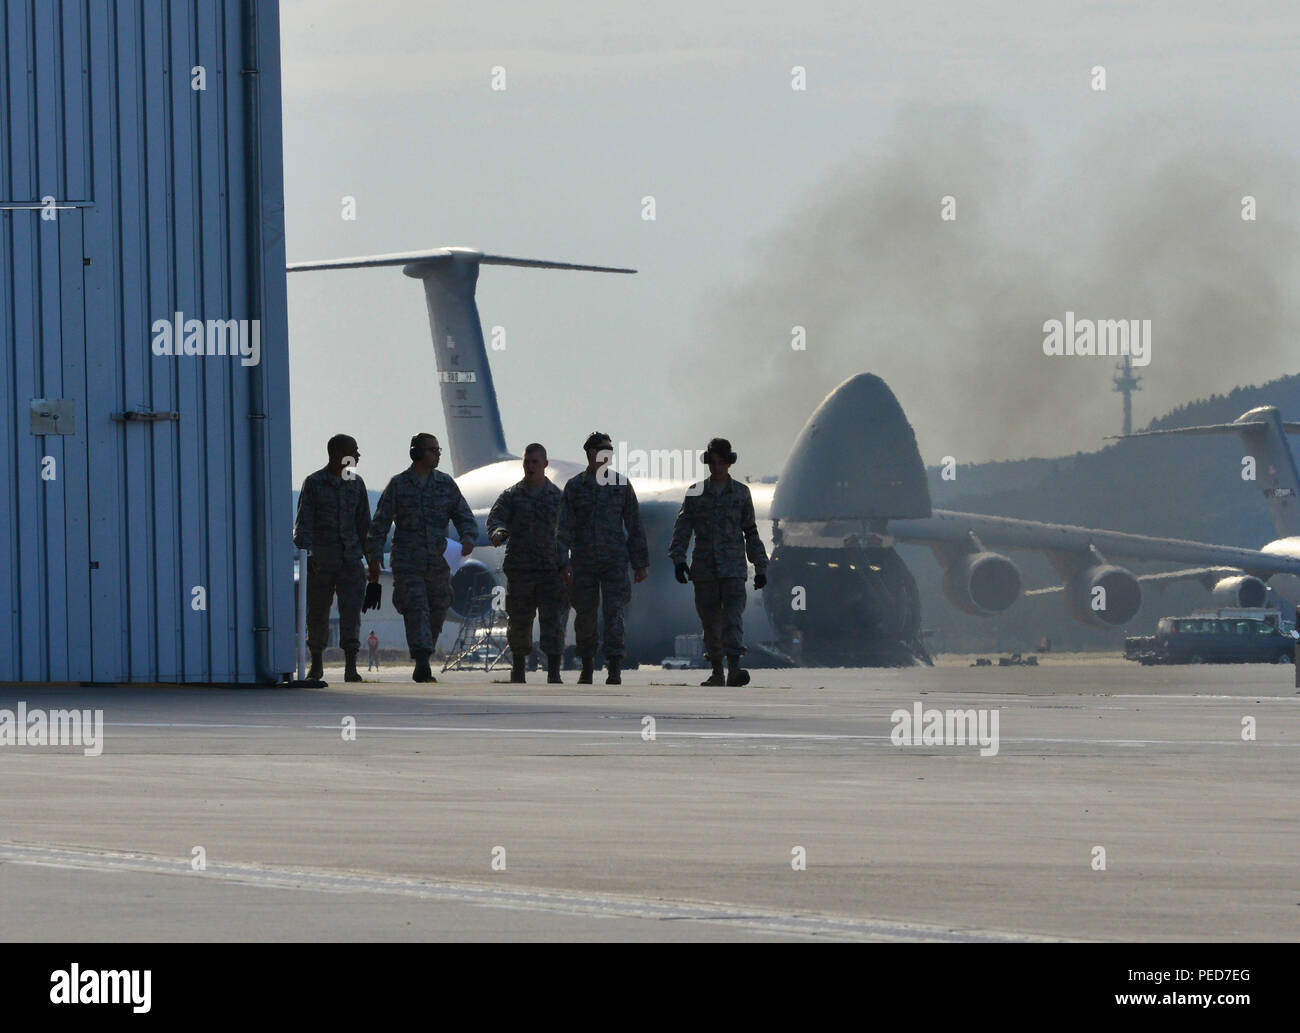 Flightline Rodeo Stock Photos Images Alamy Bundling 1 Navy M Members Of The 721st Aerial Port Squadron Fleet Services Team Leave After Completing